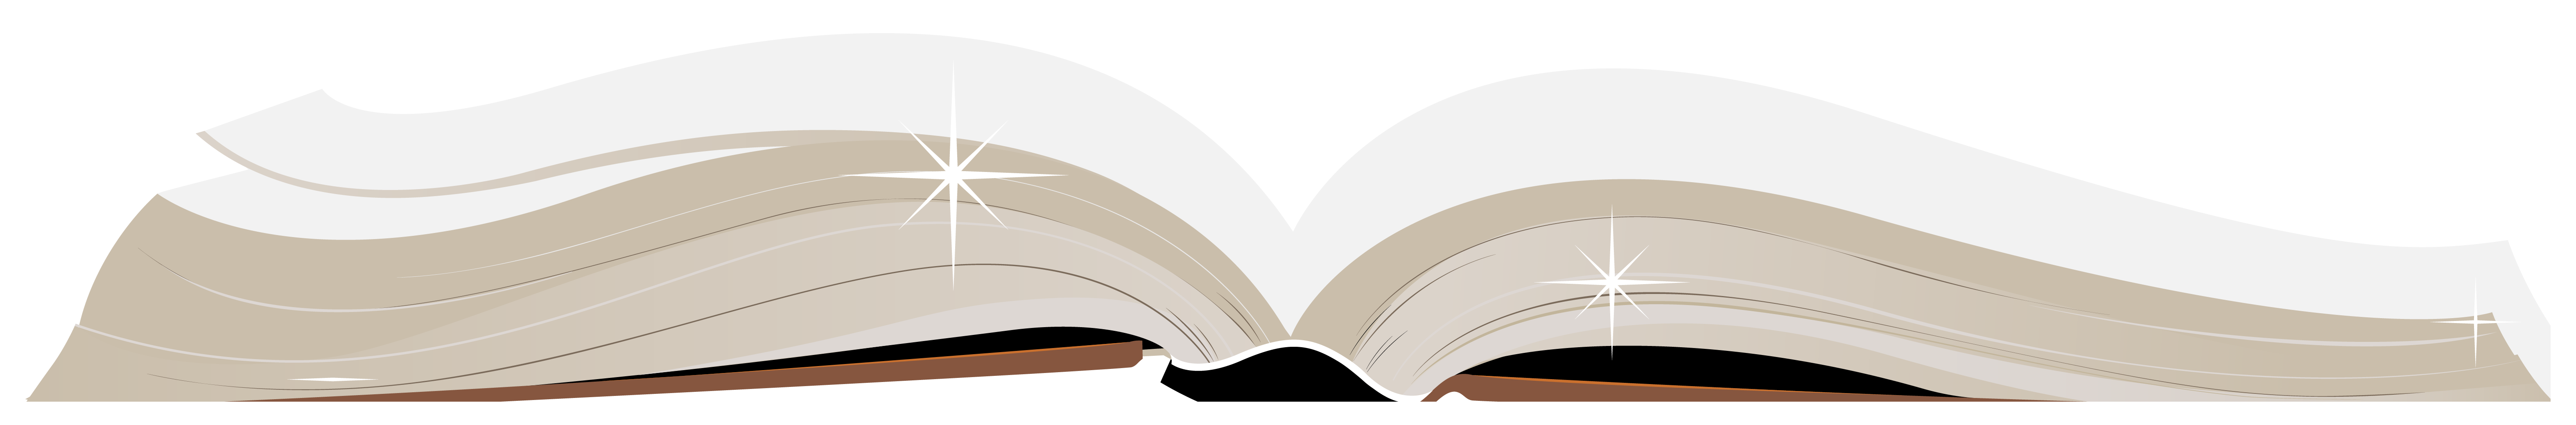 open books png